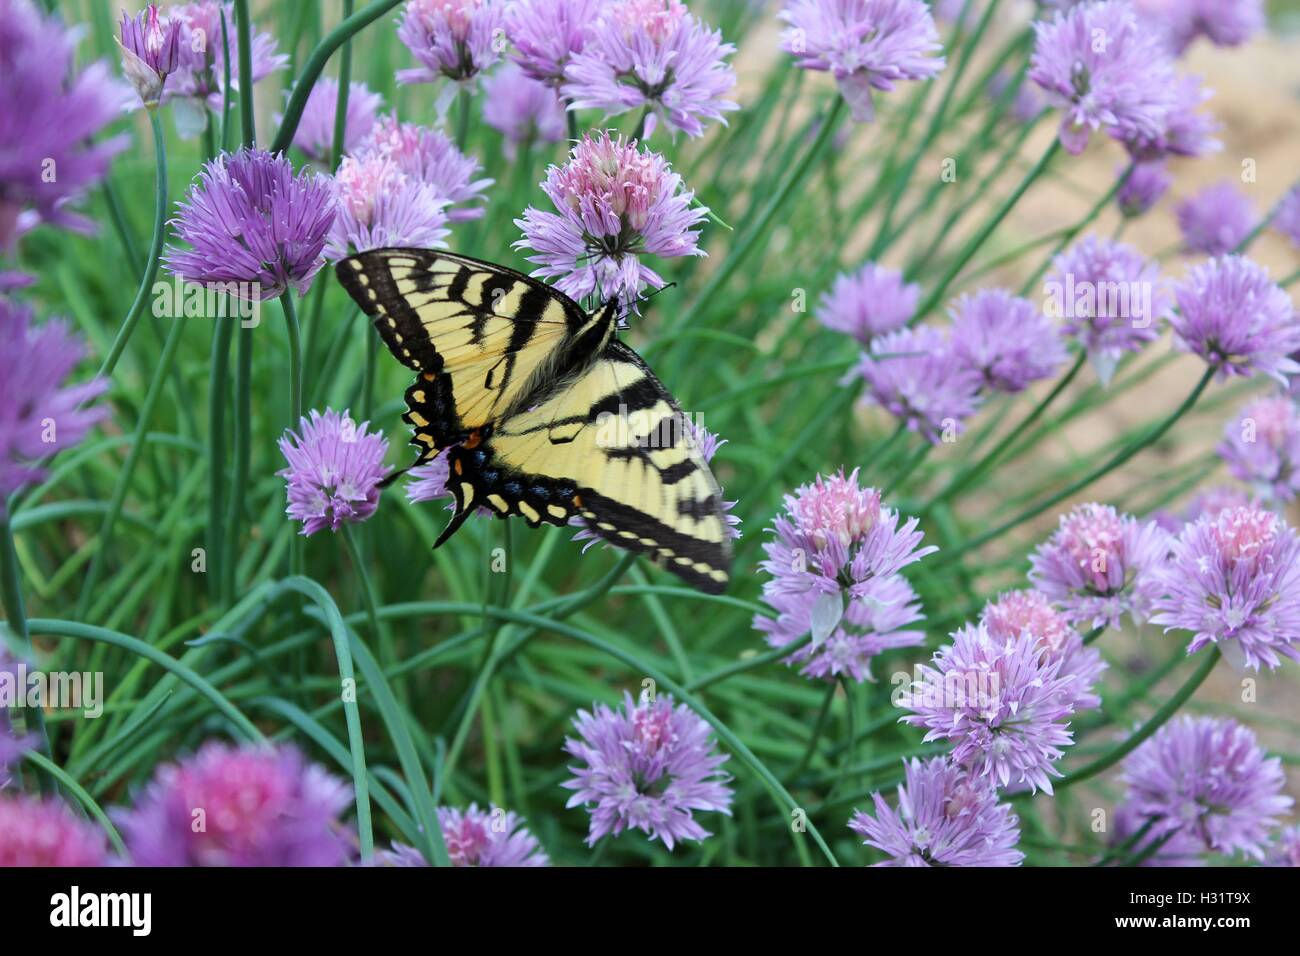 North Eastern Tiger Swallowtail Butterfly on Chive Blossoms - Stock Image